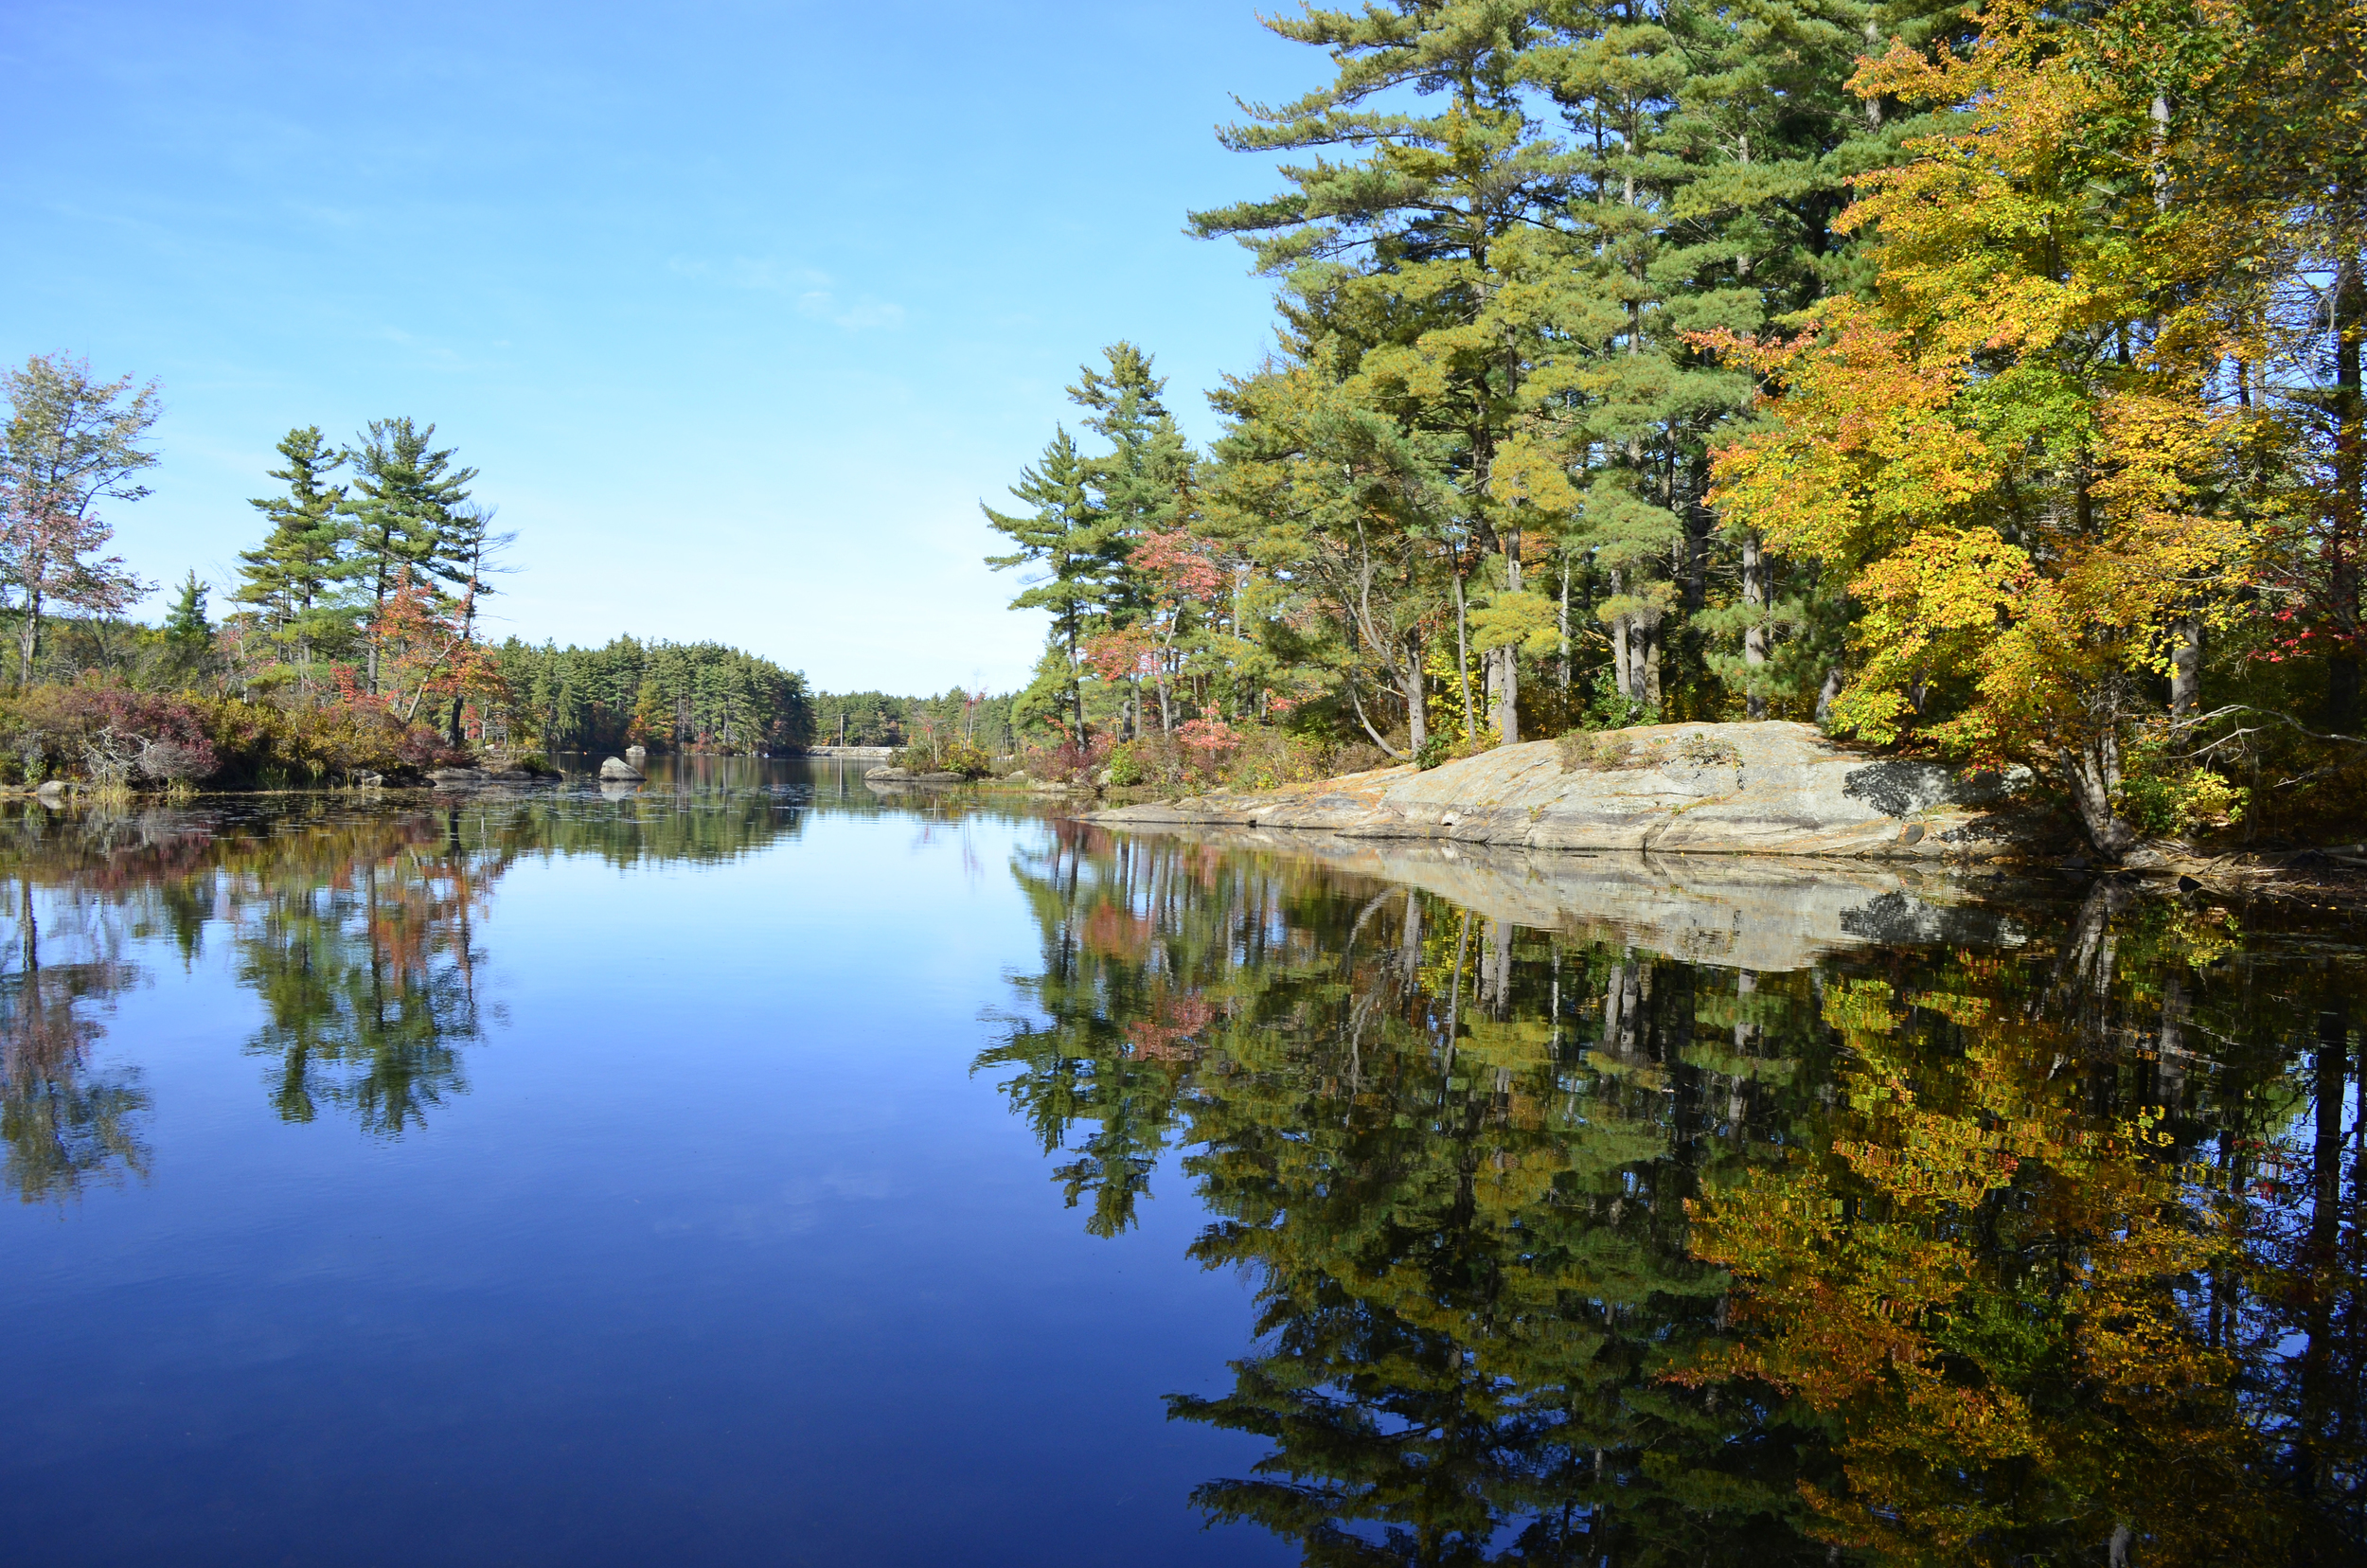 Lake Massabesic 2013-10-09 081.jpg